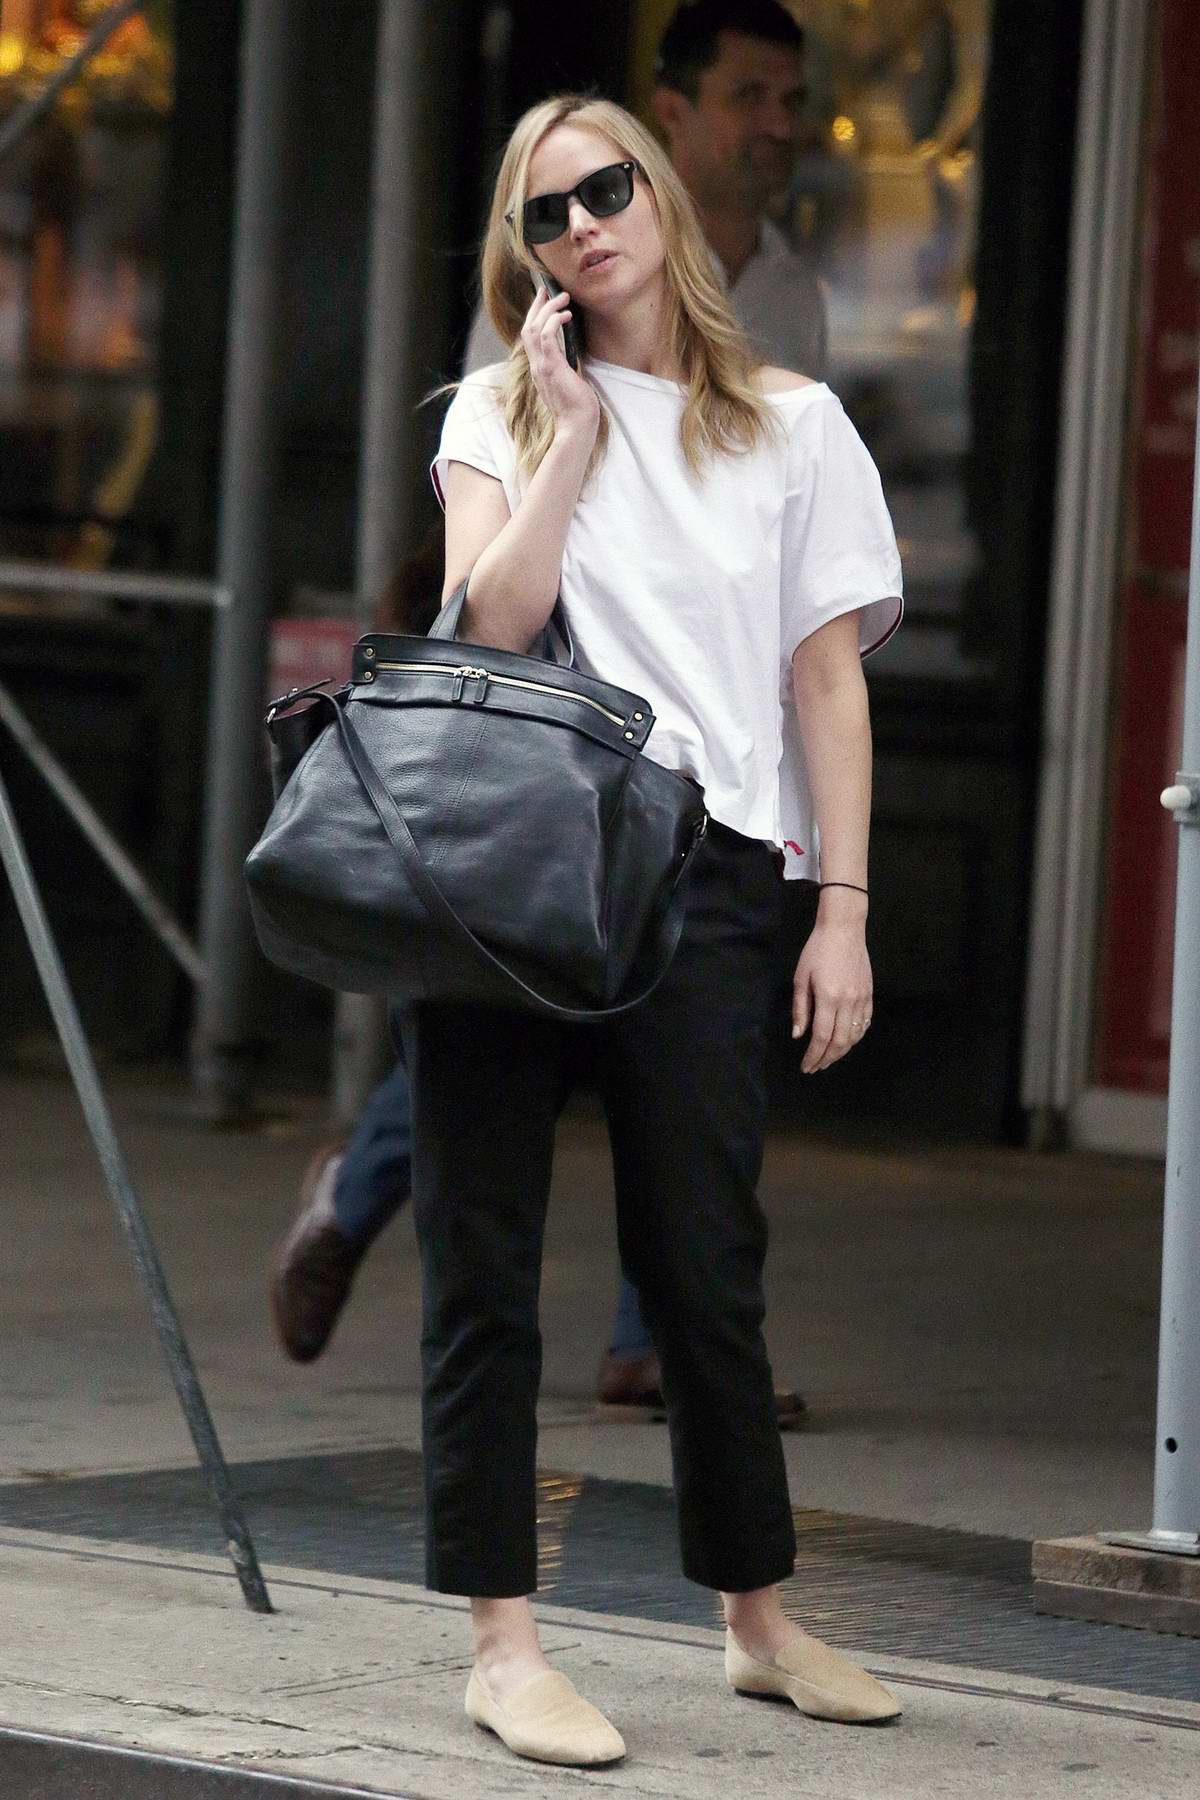 Jennifer Lawrence wears a white t-shirt and black trousers during a visit to a hair salon in New York City